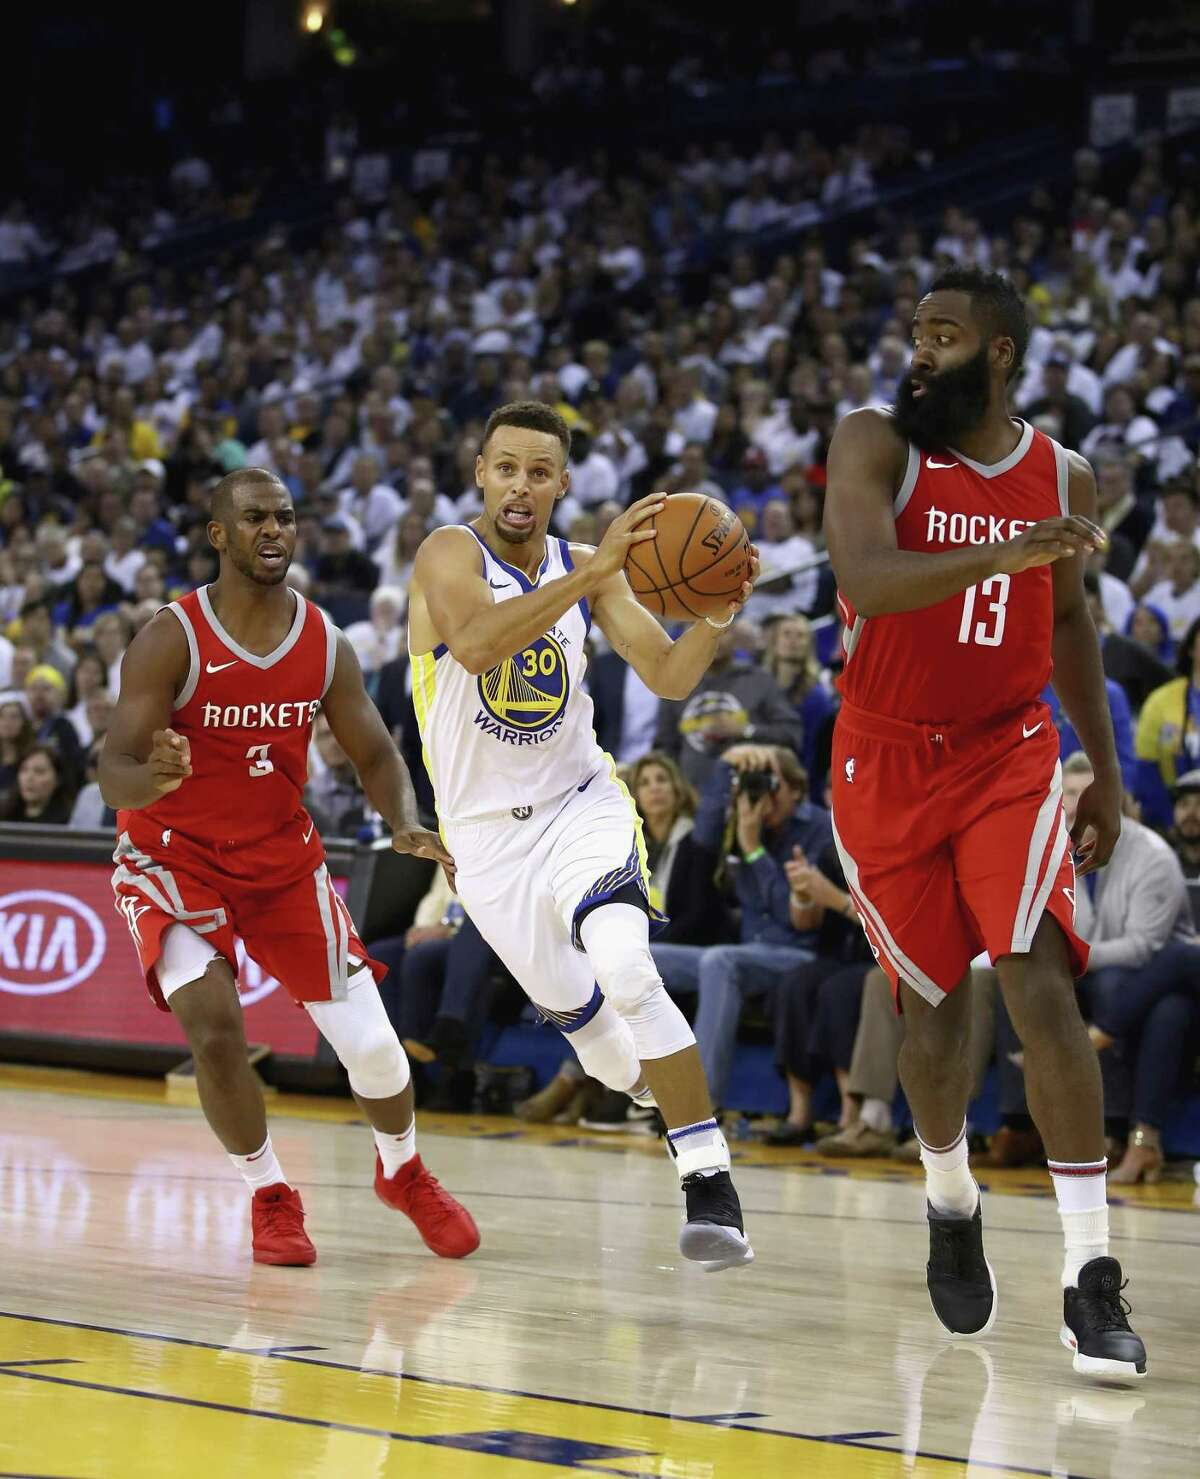 Stephen Curry drives past the Rockets' Chris Paul (left) and James Harden. Paul was acquired in a blockbuster off-season trade.